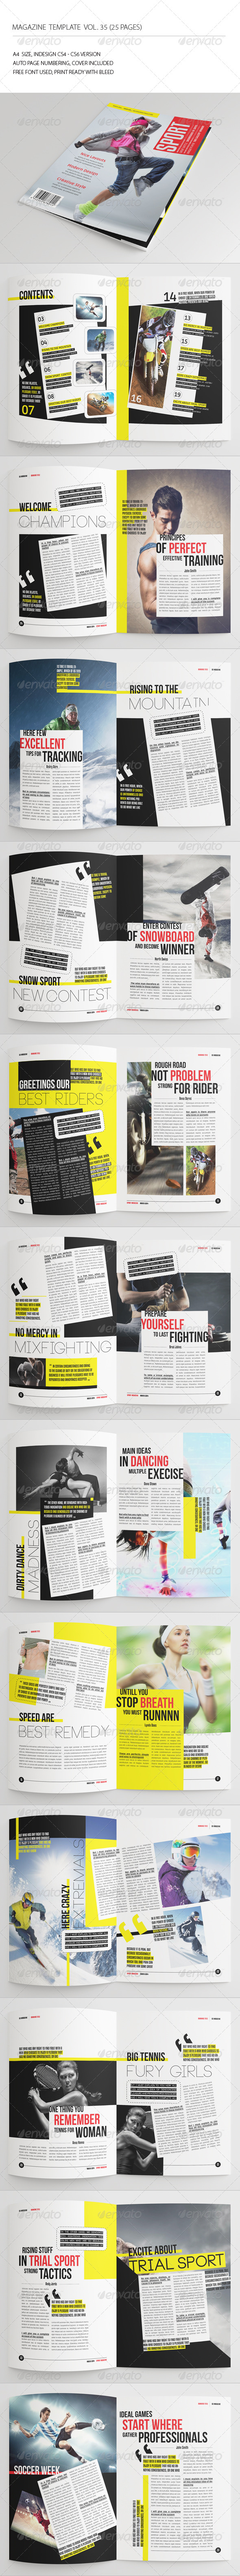 25 Pages Sport Magazine Vol35 - Magazines Print Templates